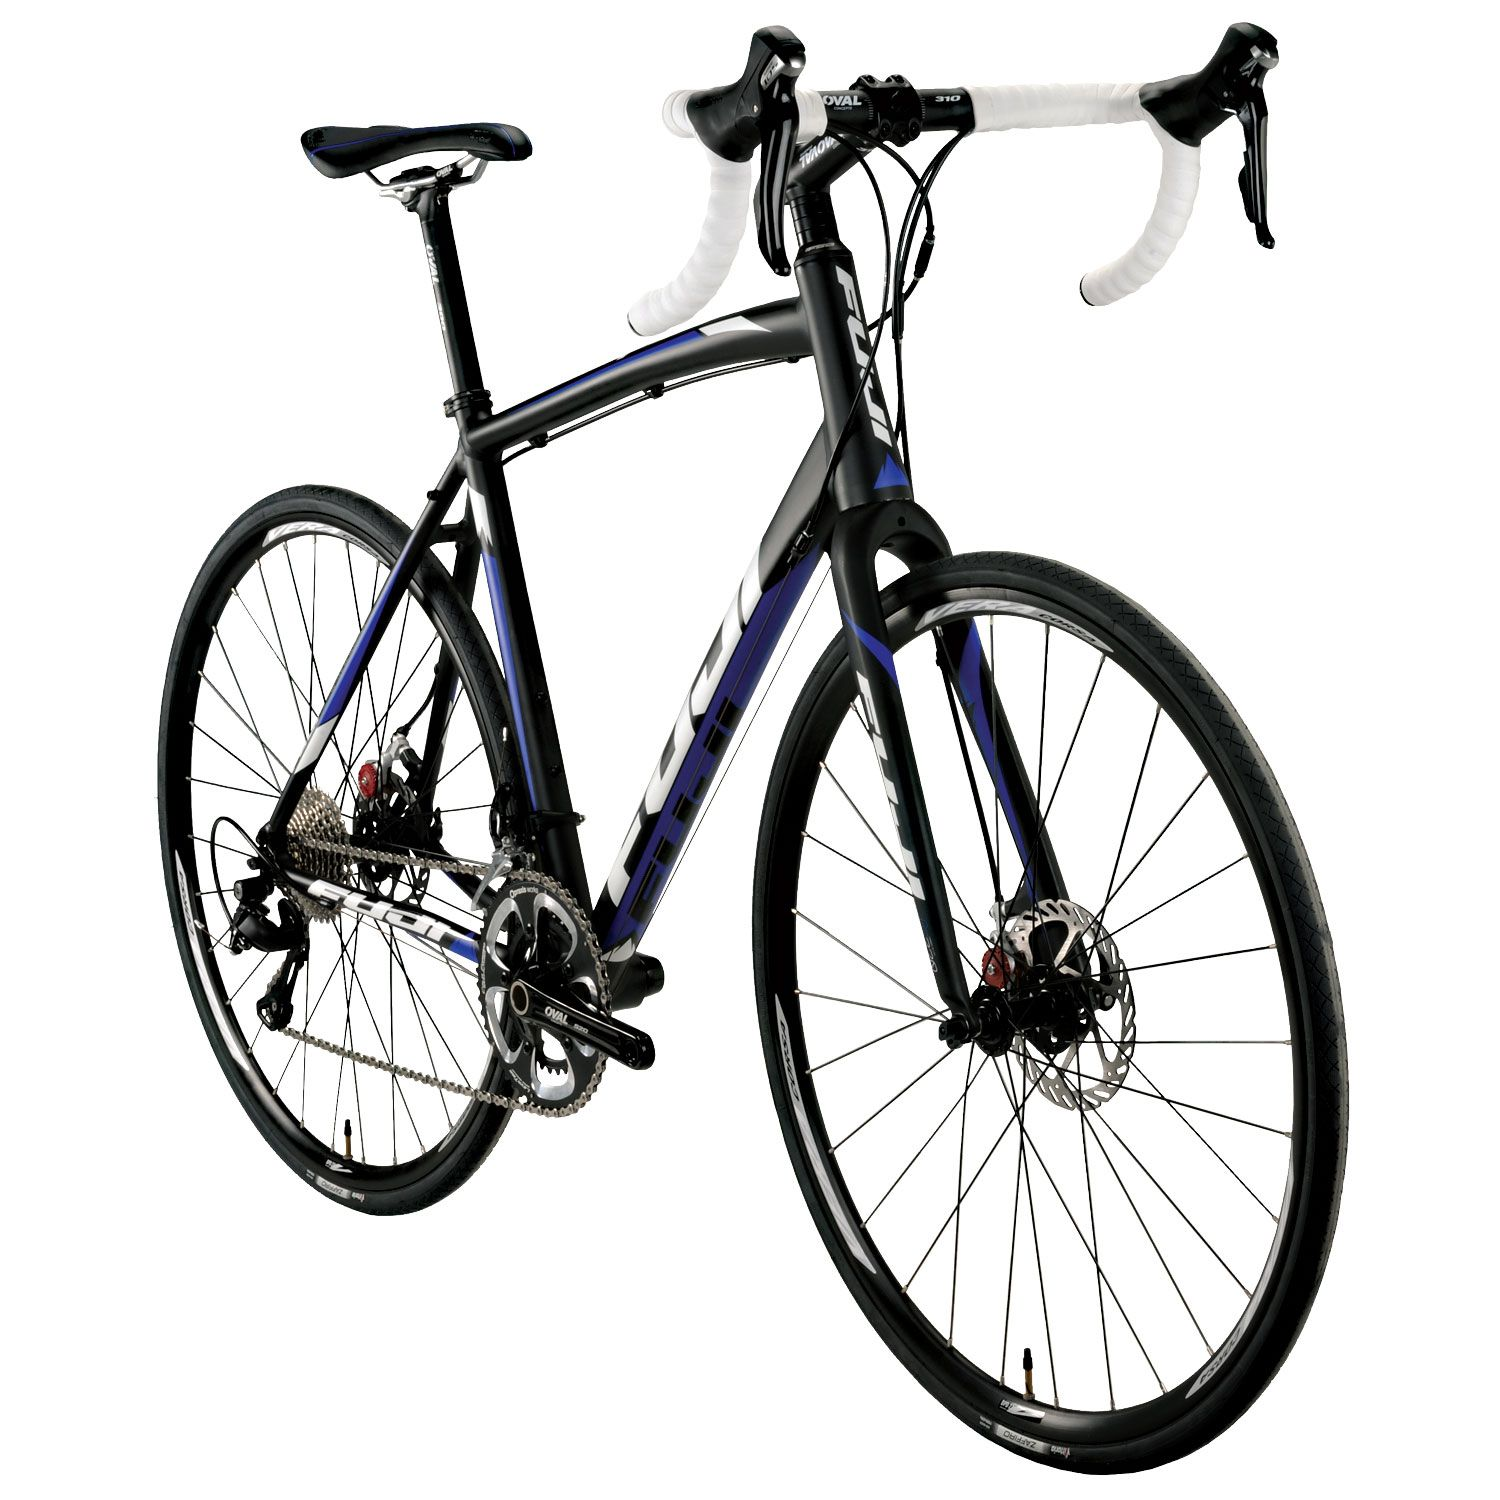 Cuadro Fuji Fuji Sportif 1 Le Road Bike 2015 Performance Exclusive